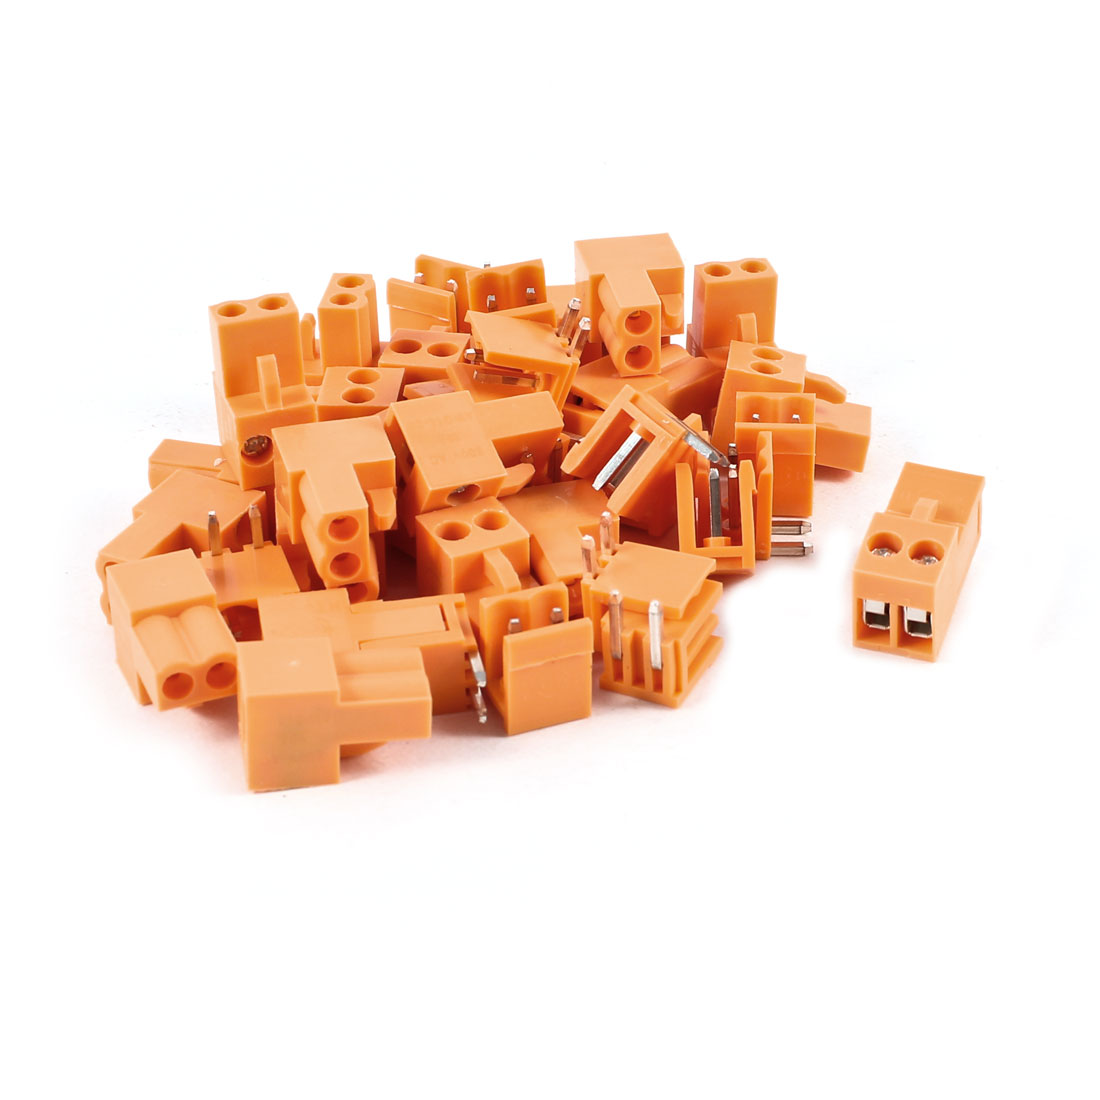 20 Pcs 2Pin 3.96mm Spacing PCB Screw Terminal Block Connector 300V 10A AWG14-26 Orange